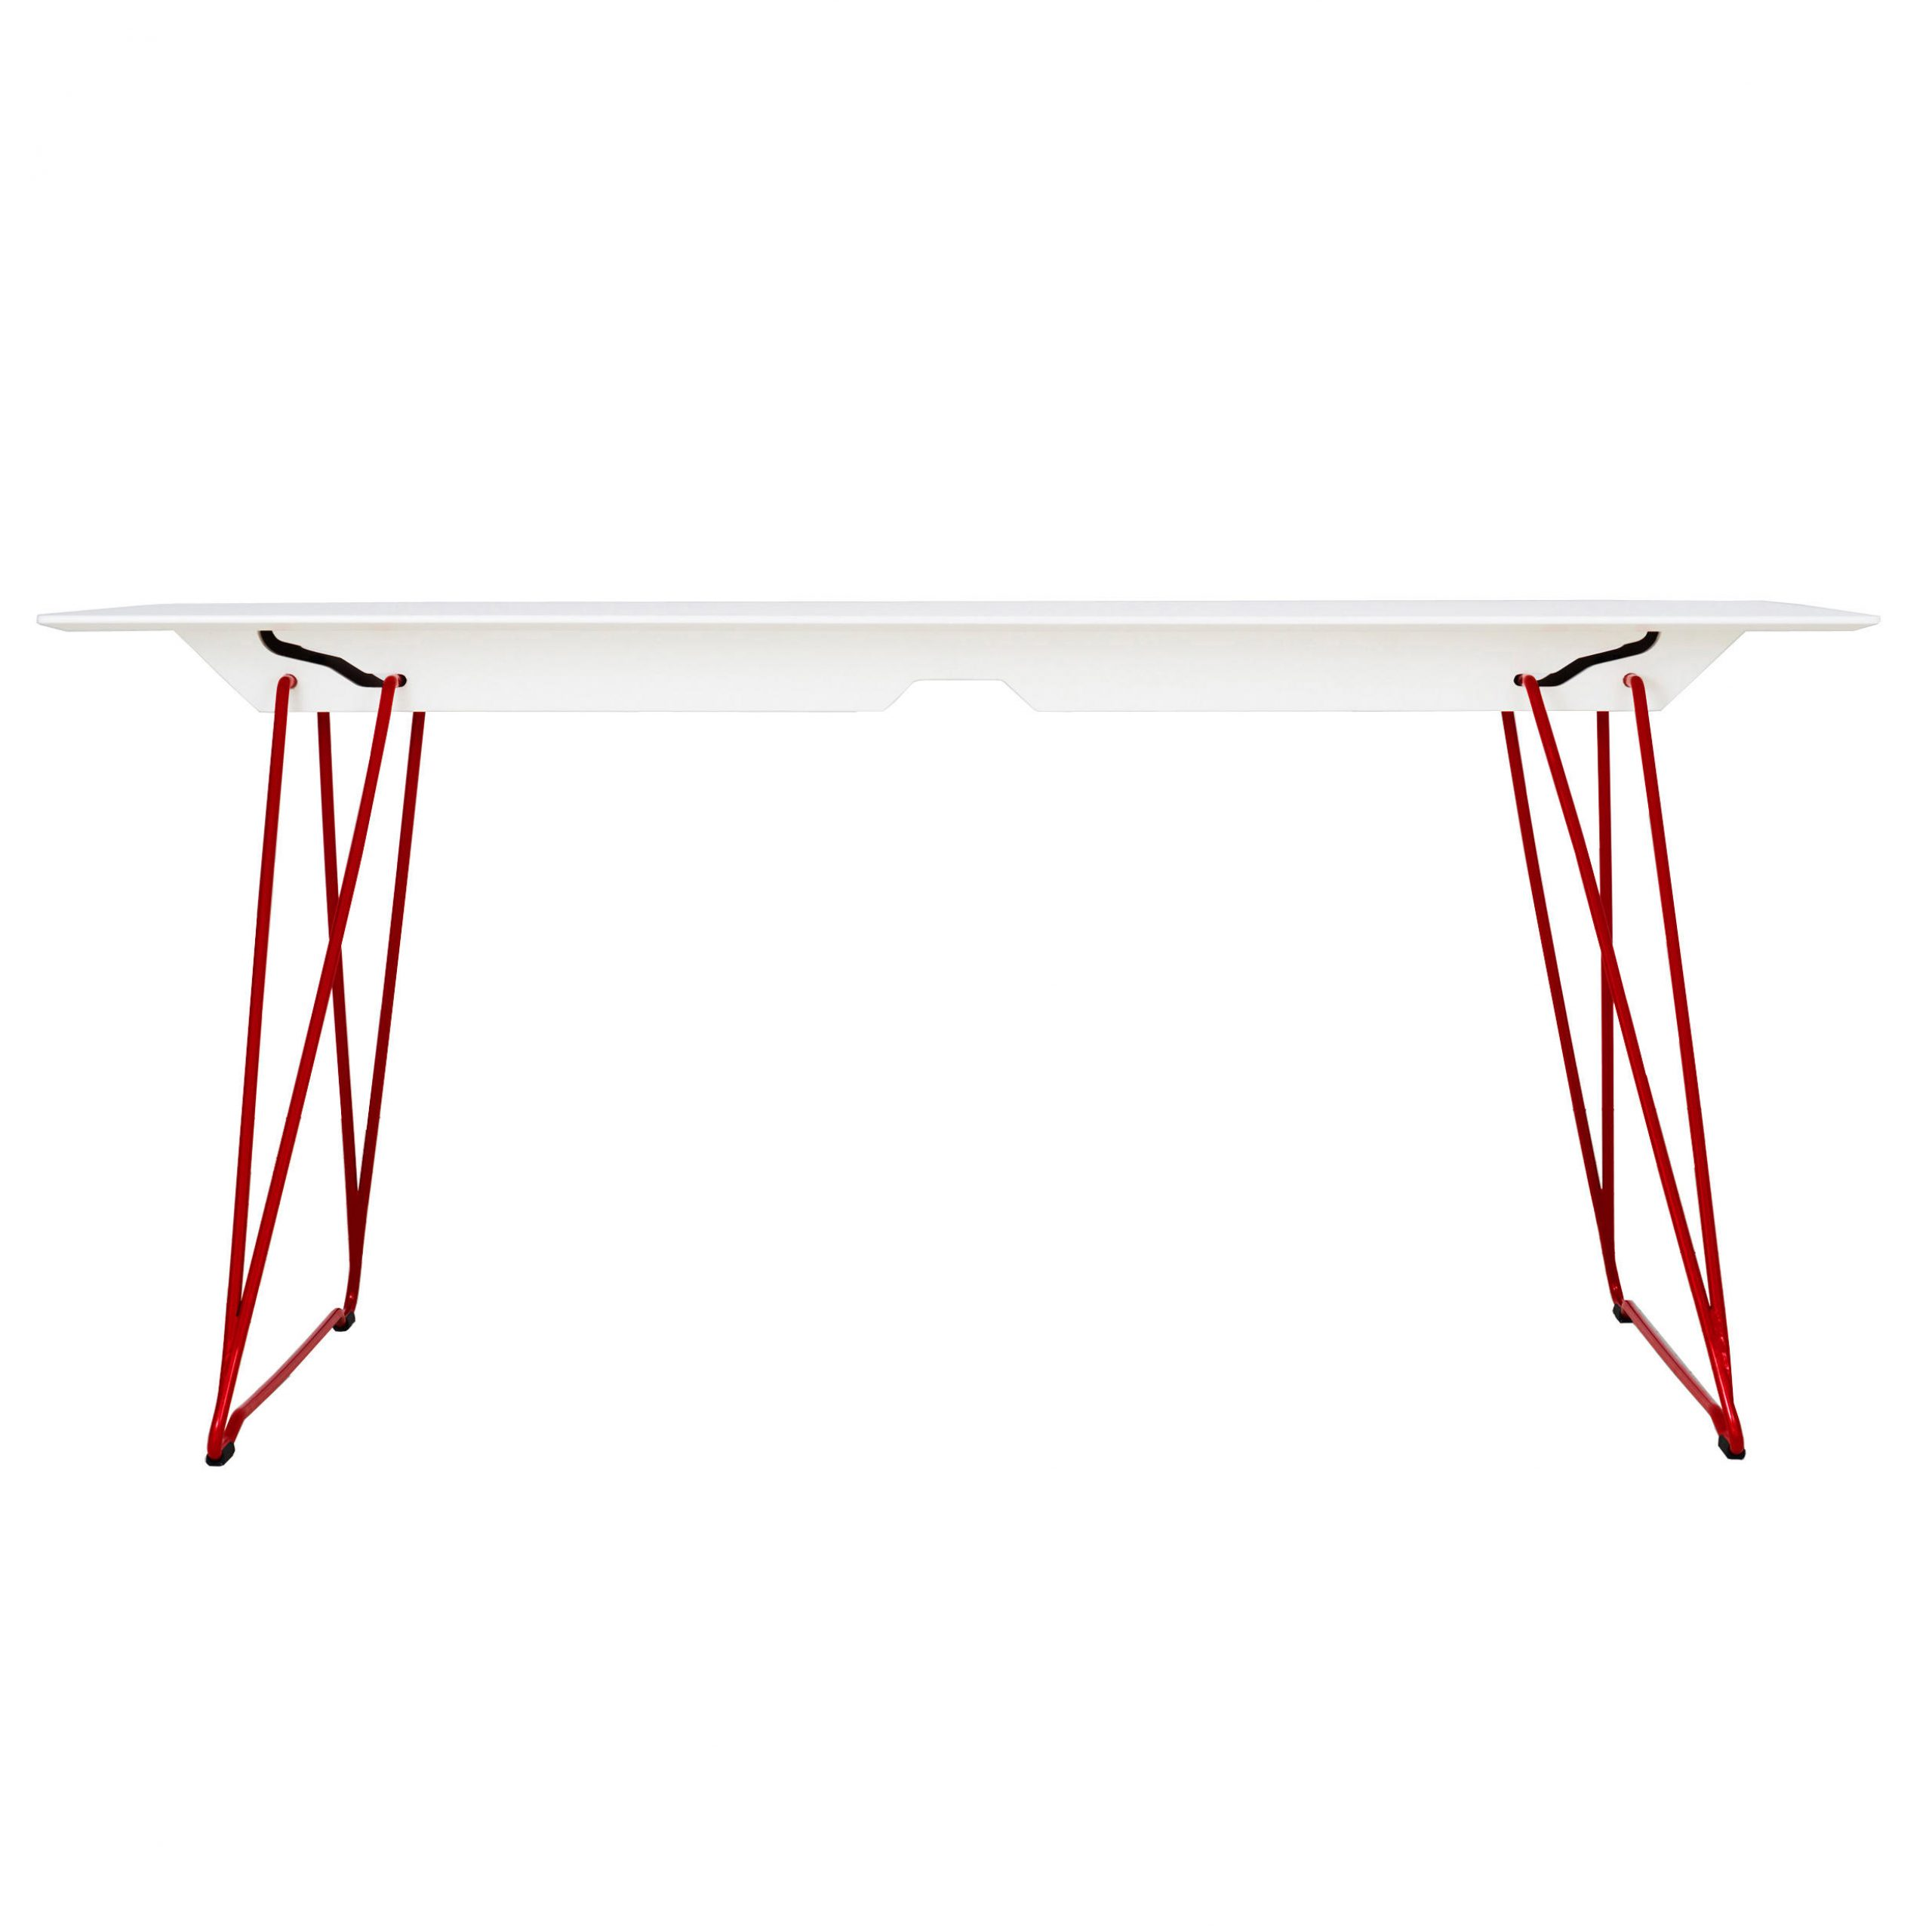 Lucy – Dining Tables From Johanson Design | Architonic Inside Current Lucy Bar Height Dining Tables (Image 12 of 25)